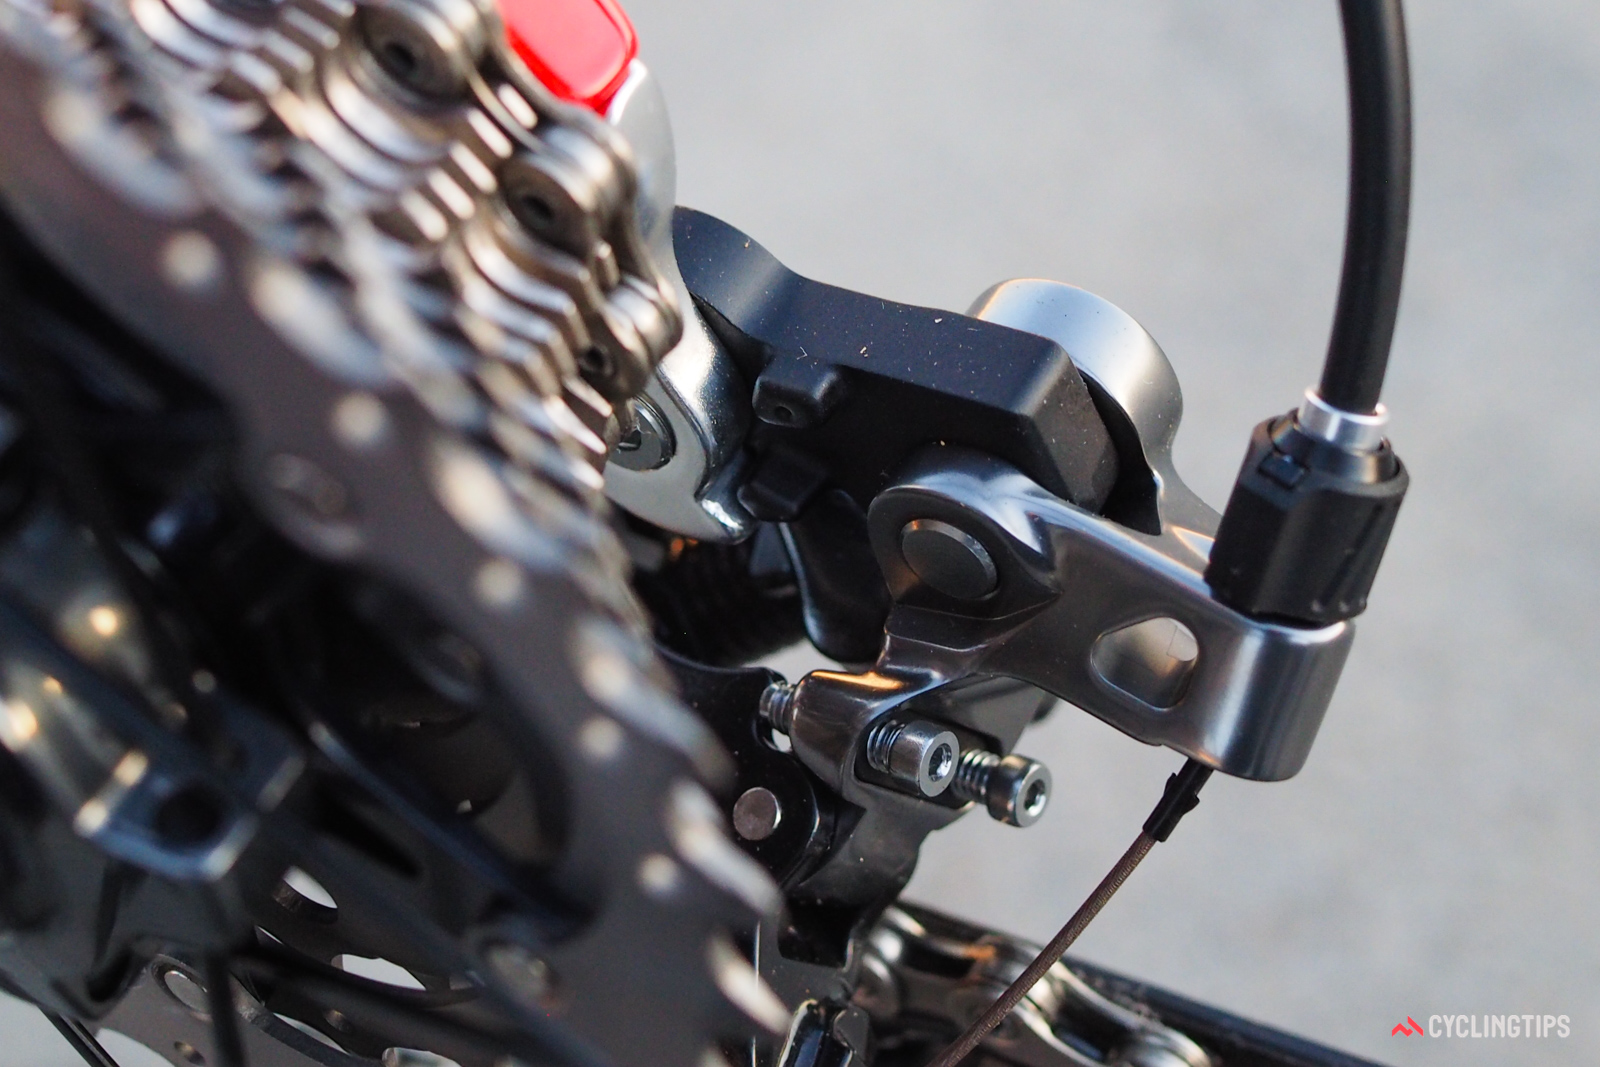 It probably won't be long until frame manufacturers begin to offer direct-mount hangers to work specifically with Shimano's latest rear derailleurs. Eliminating this intermediate link (the one in black) and attaching the derailleur body directly to an extended hanger would not only speed up wheel changes, but would also increase system rigidity.